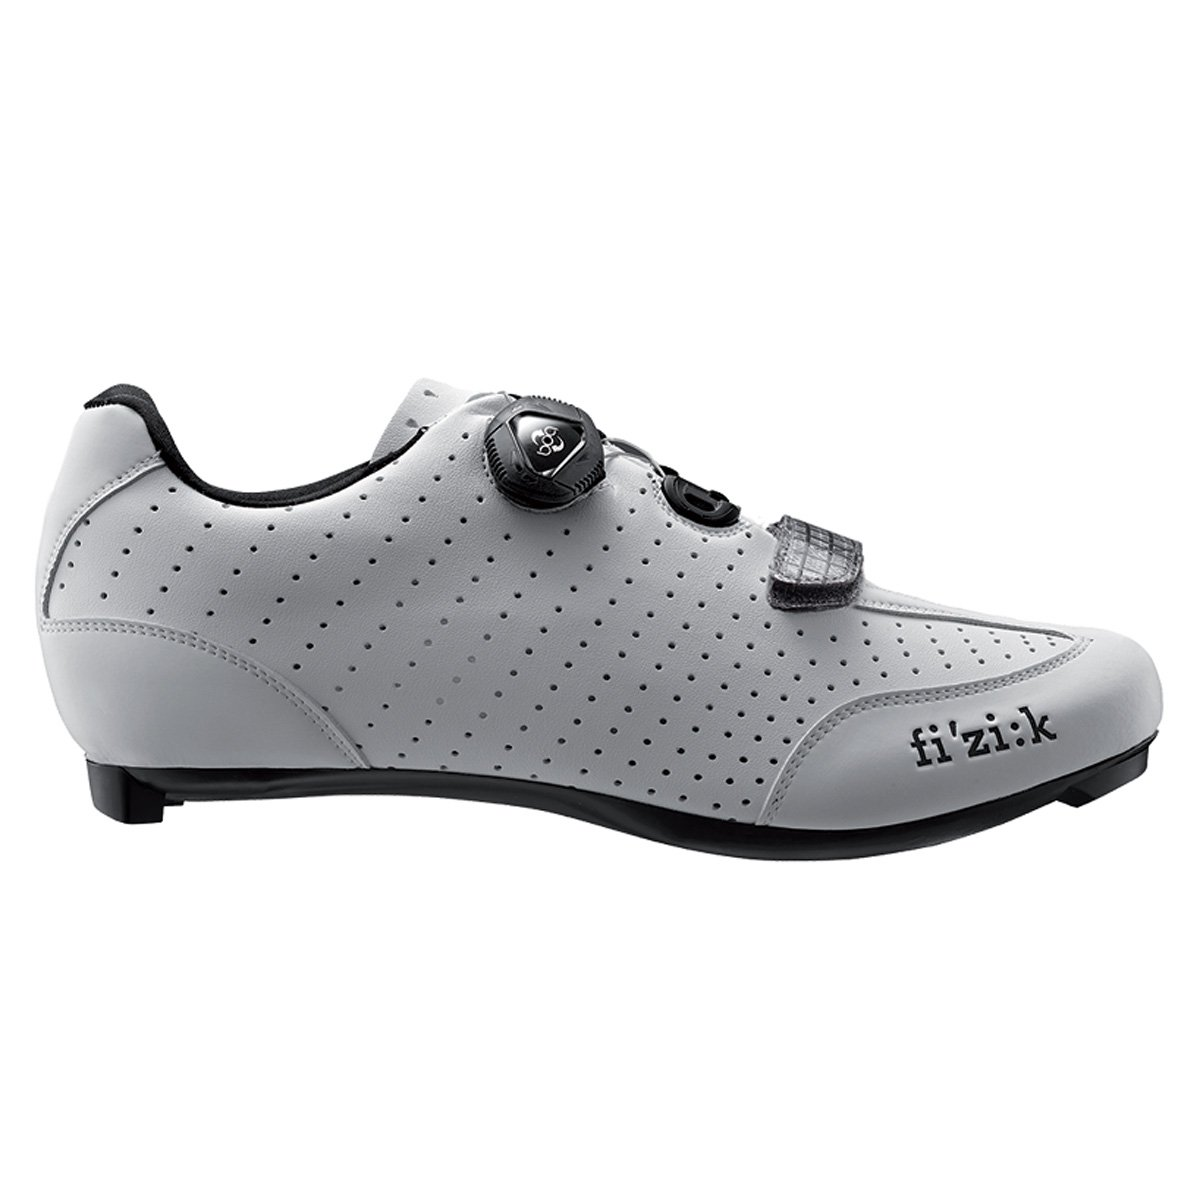 Fizik Men s R3B Uomo Boa Road Sport Cycling Shoes – Black Black